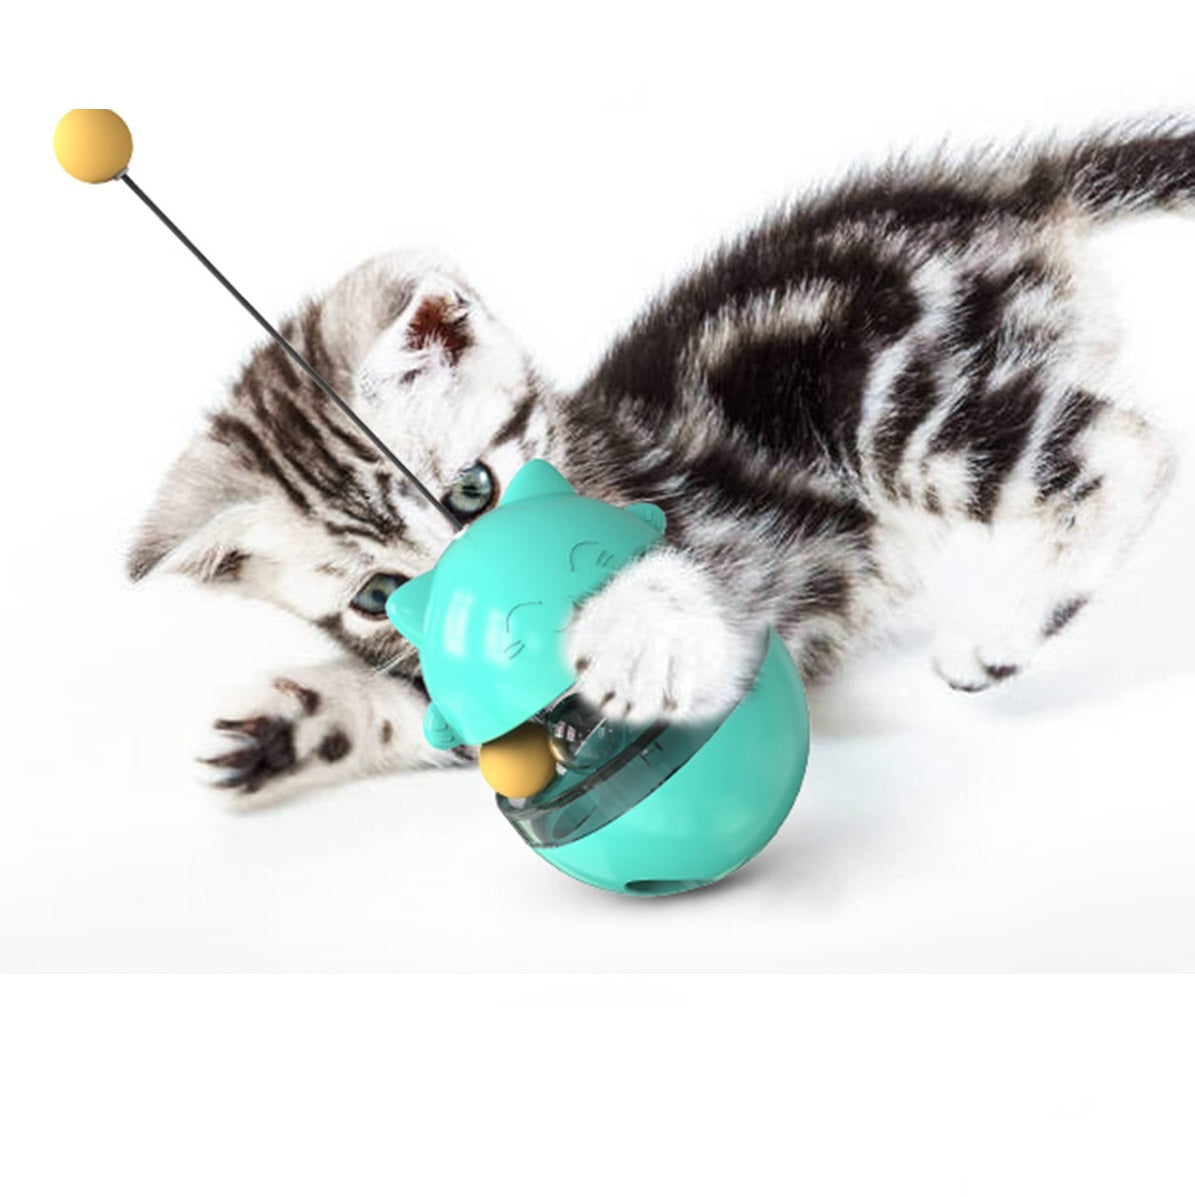 40%OFF-Roly-poly cat ball